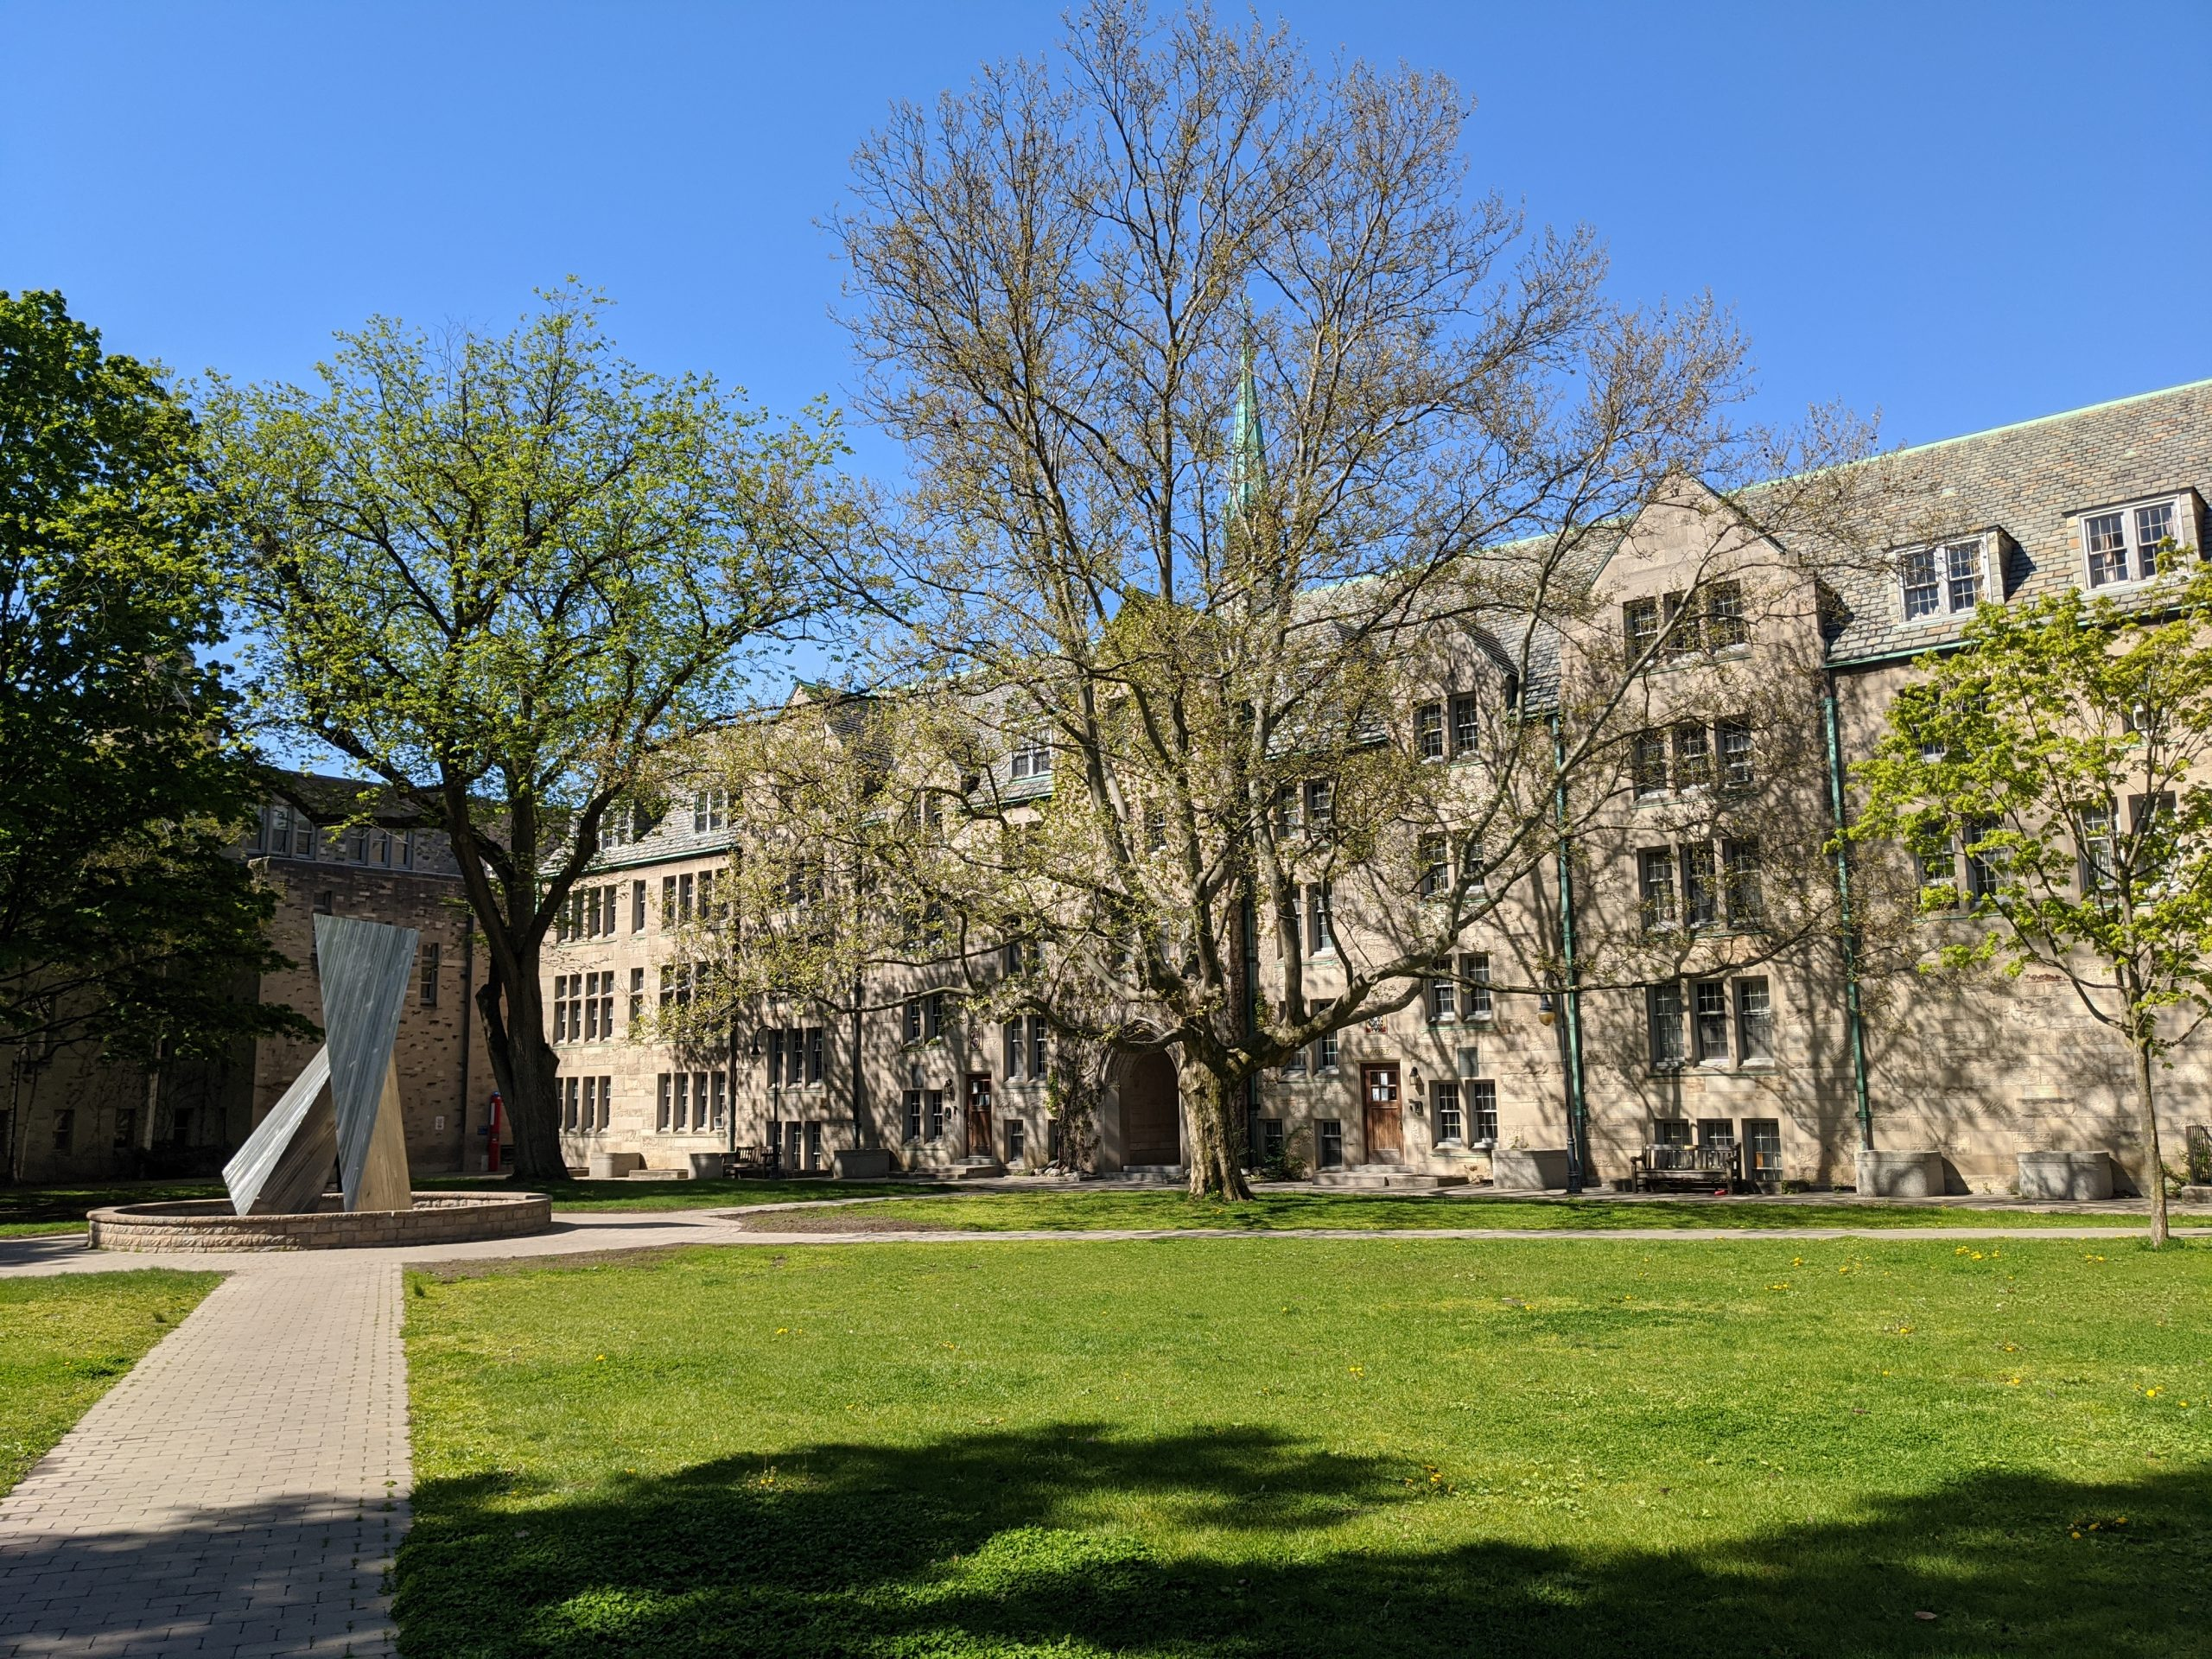 Sunny image of the St. Mike's quad and sculpture, with a vibrant green lawn and blue sky and the trees starting to bud